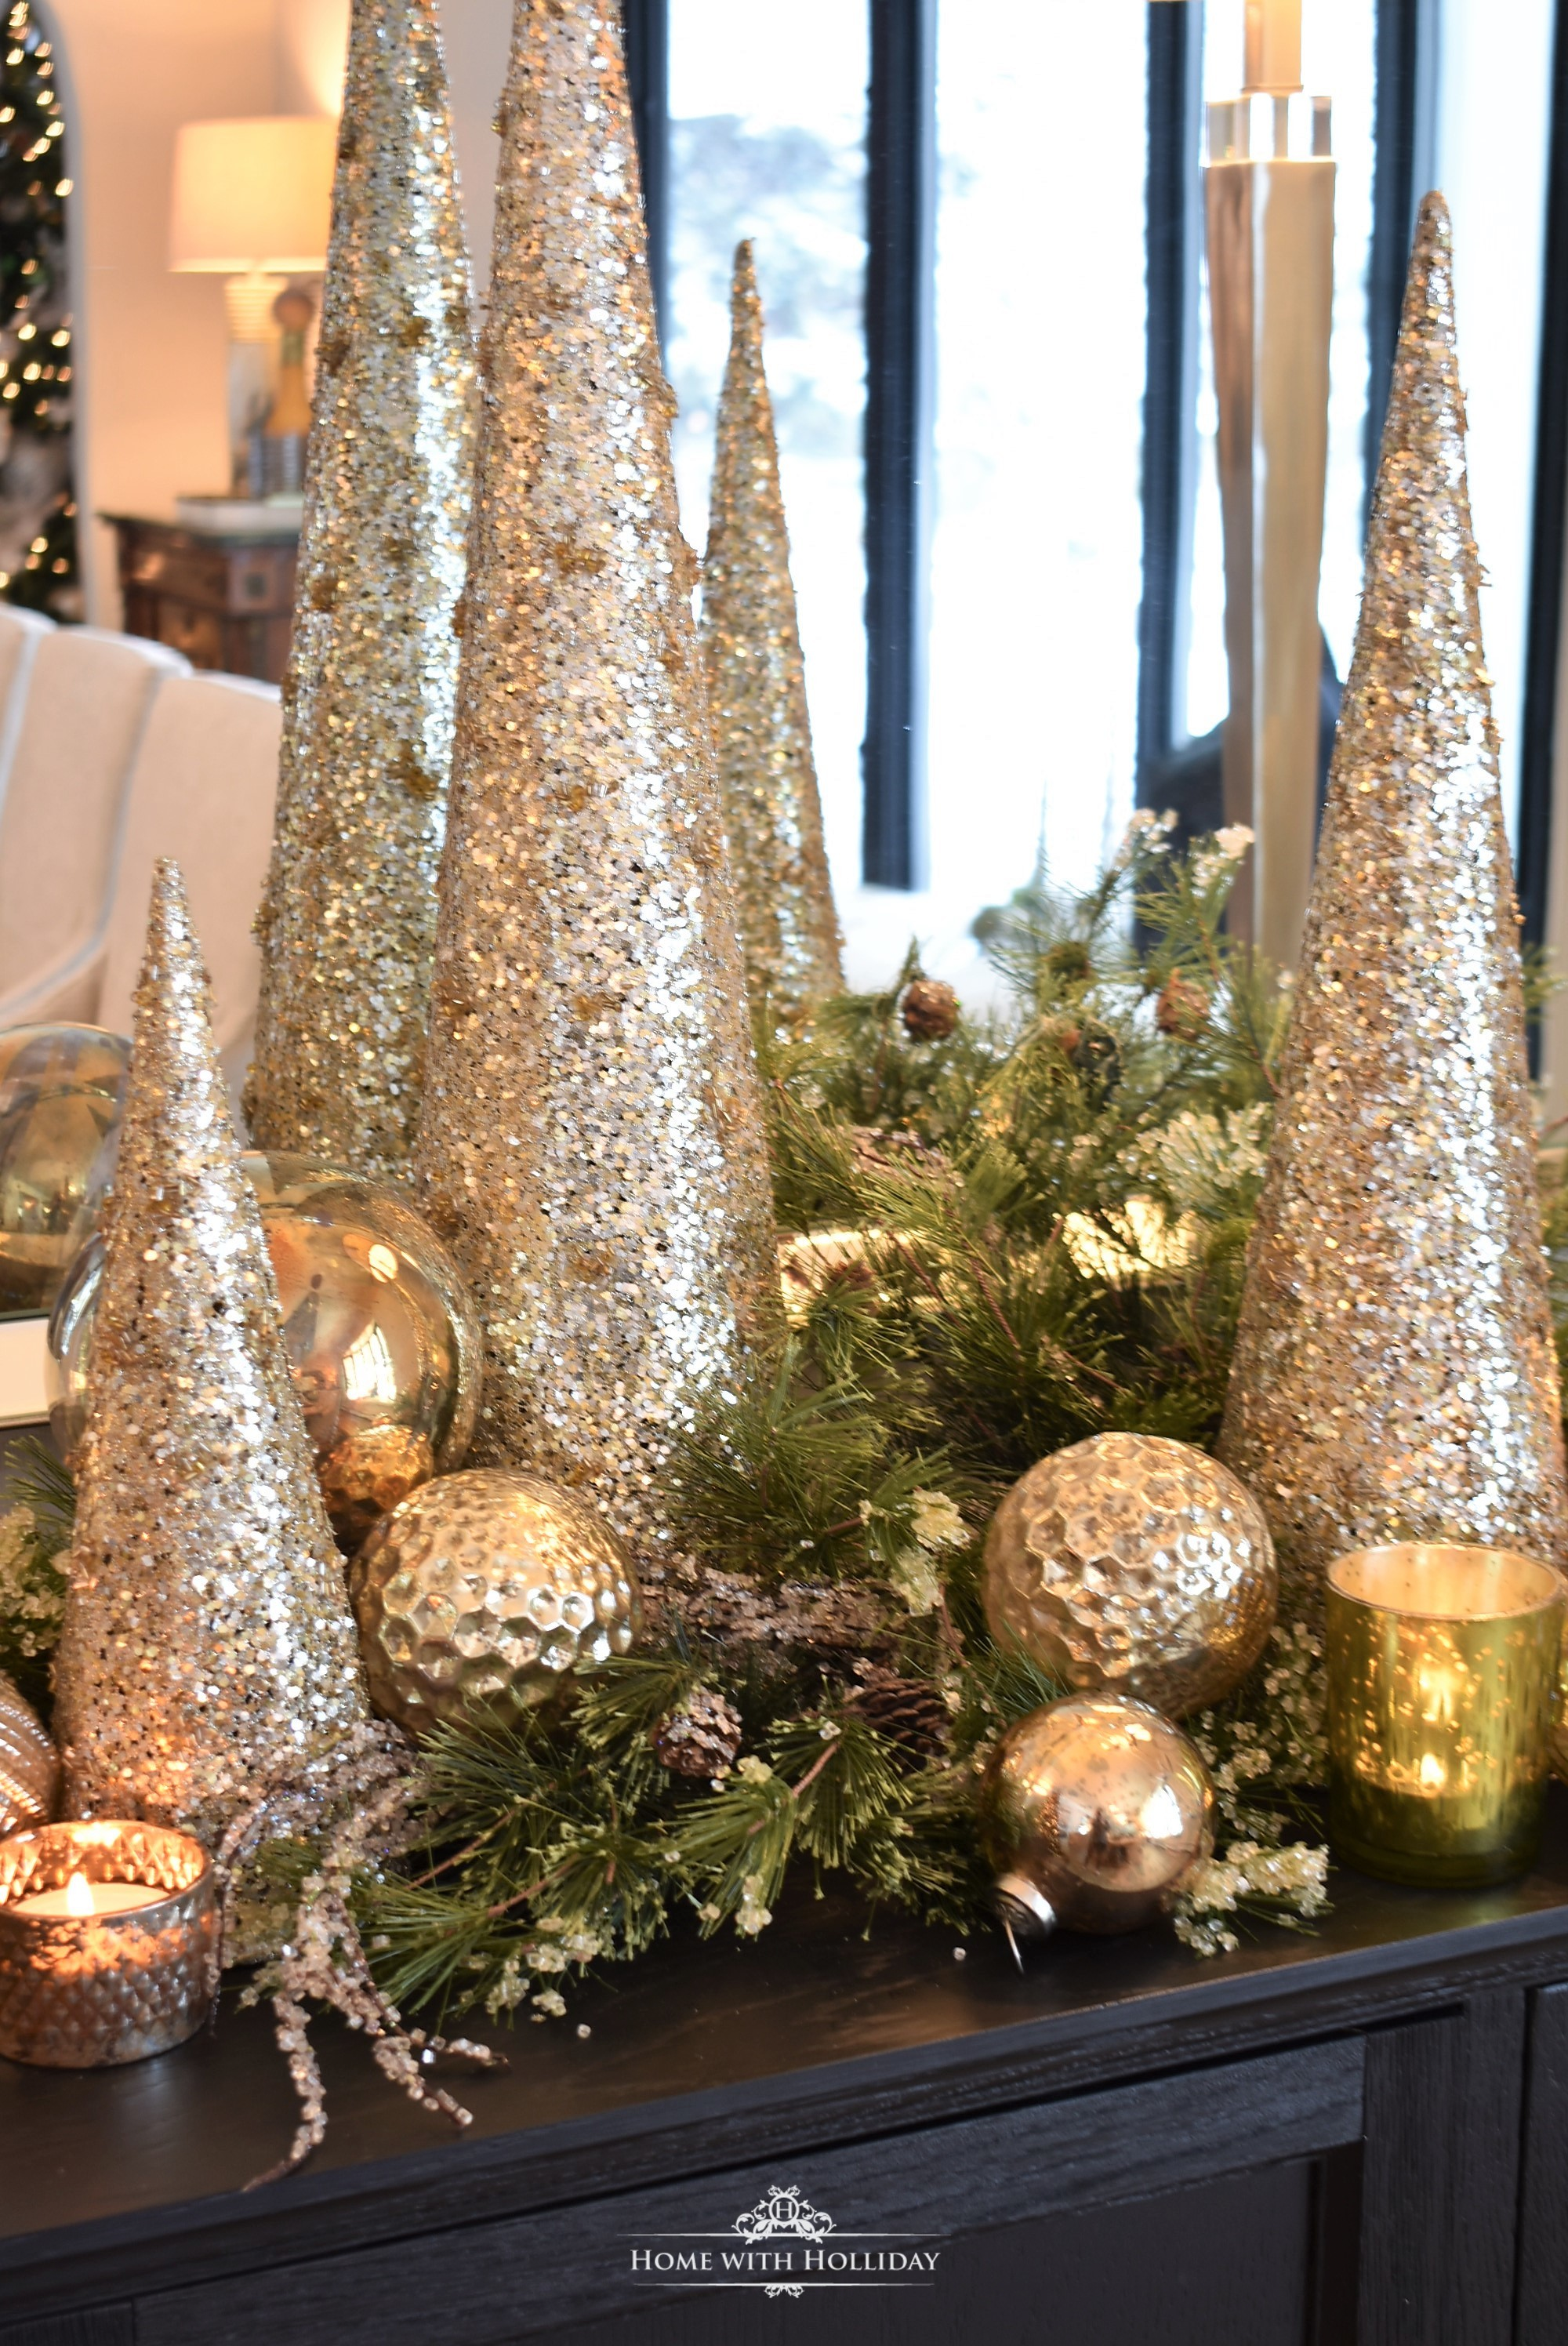 Simple Silver and Gold Glam Christmas Centerpiece - Home with Holliday